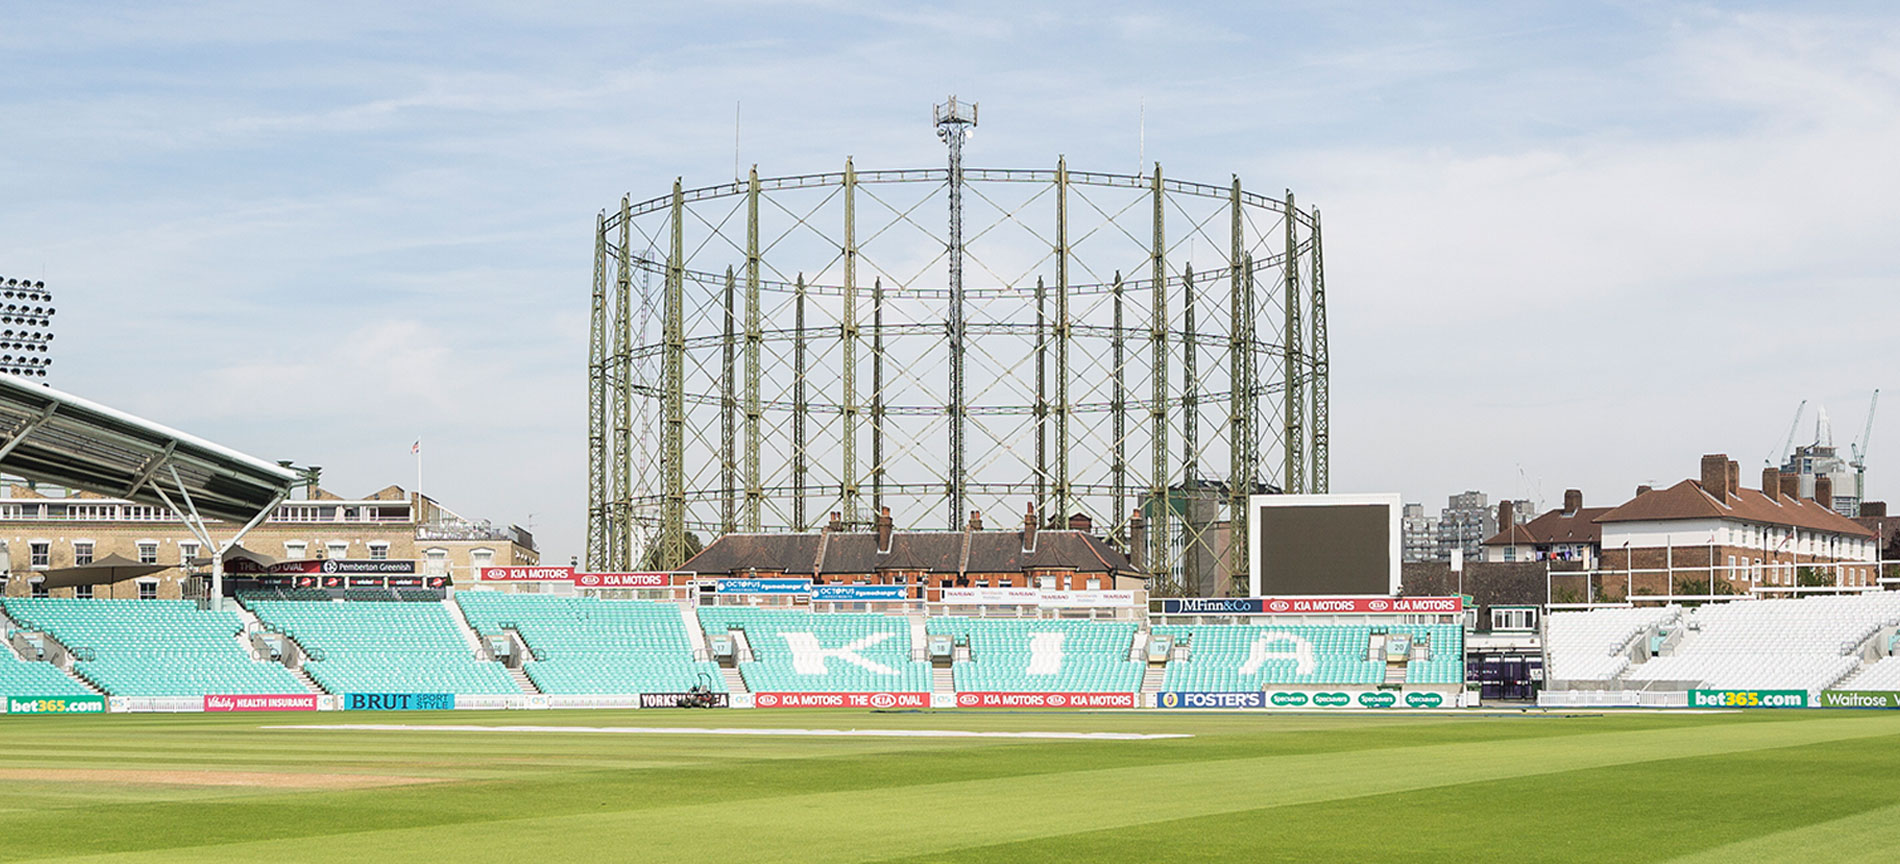 Oval Gasholder load